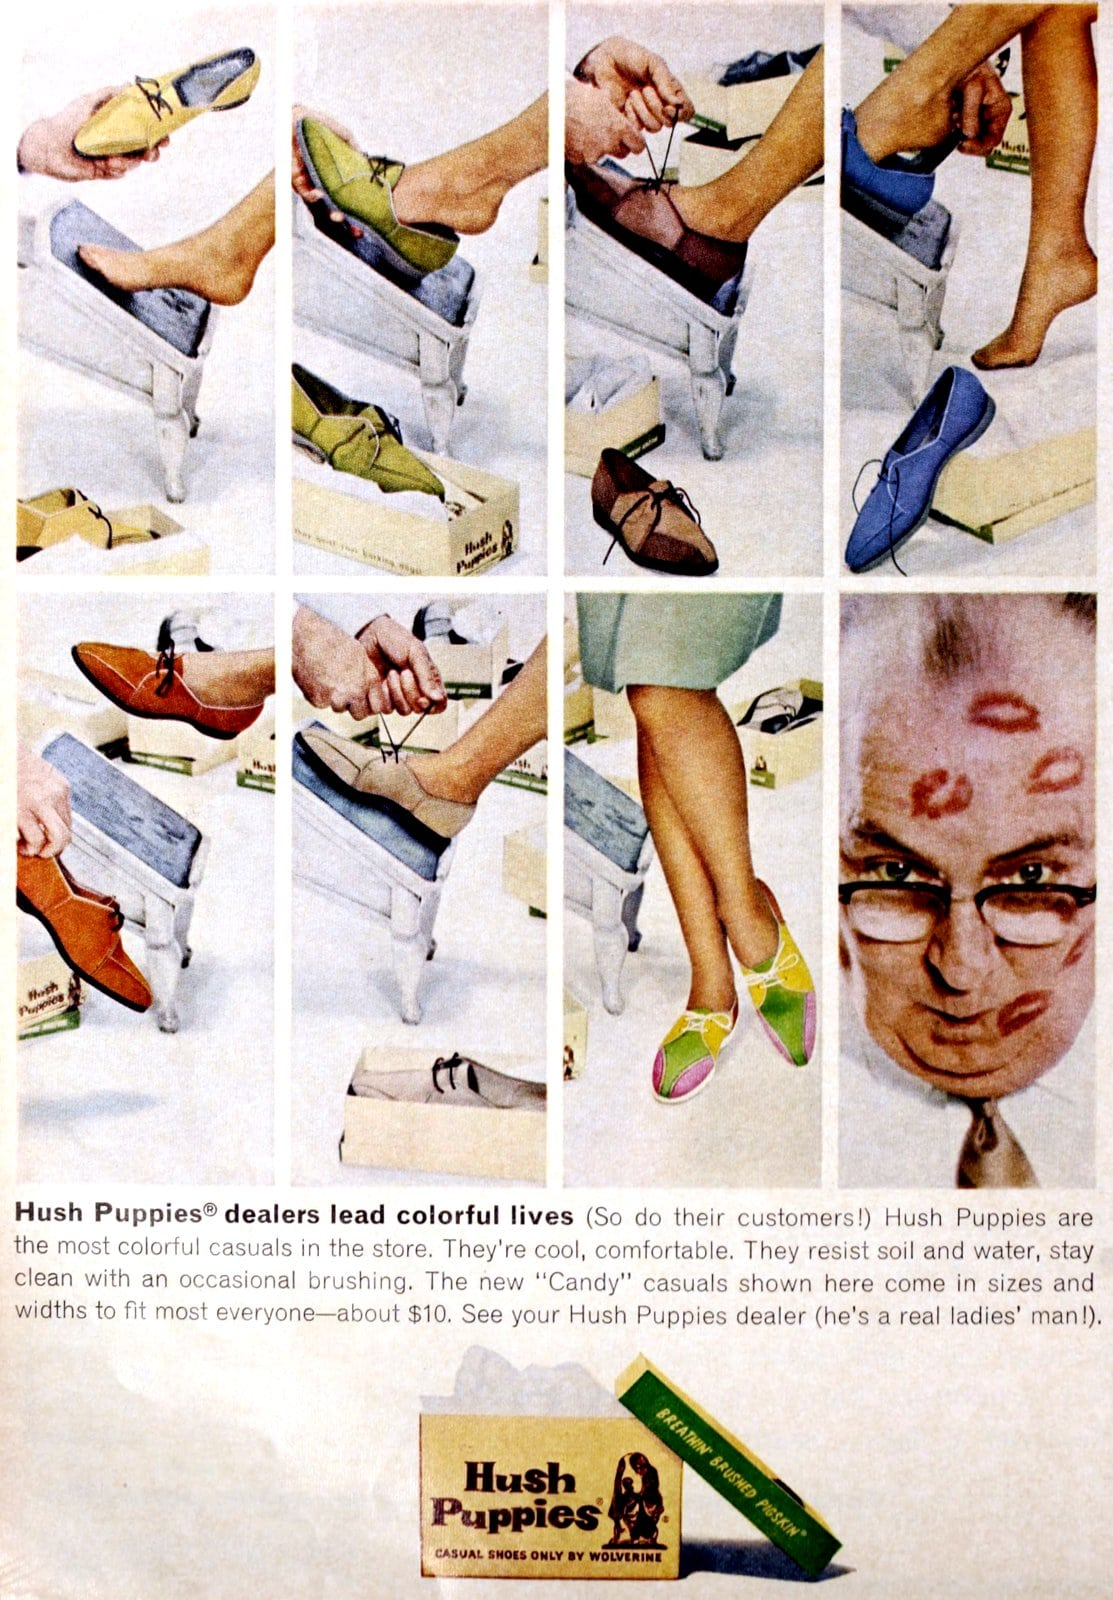 Hush Puppies dealers lead colorful lives (1963)